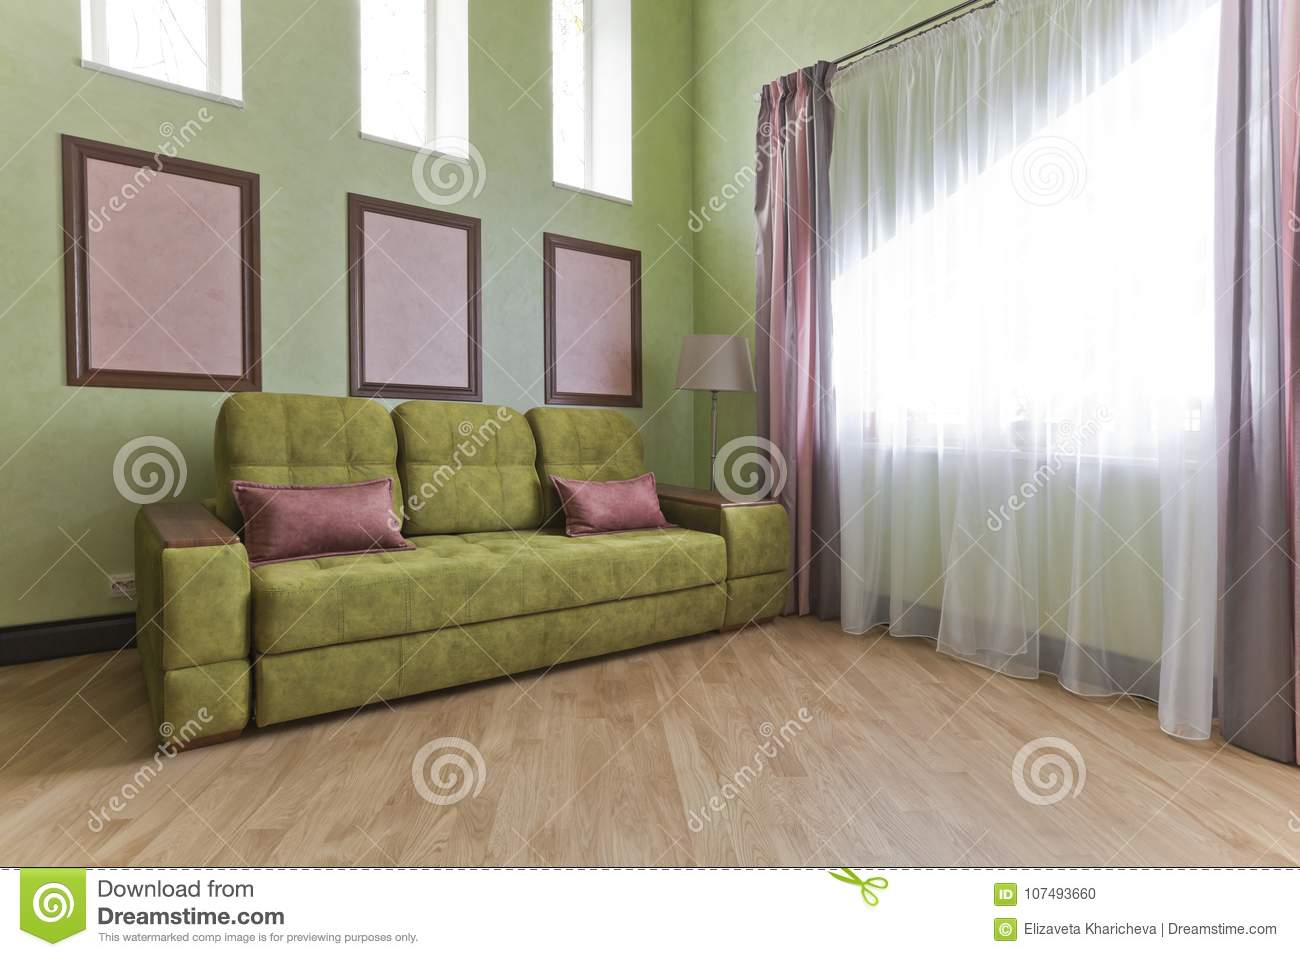 Interior In Green And Pink Colors With Green Sofa And Light Parquet